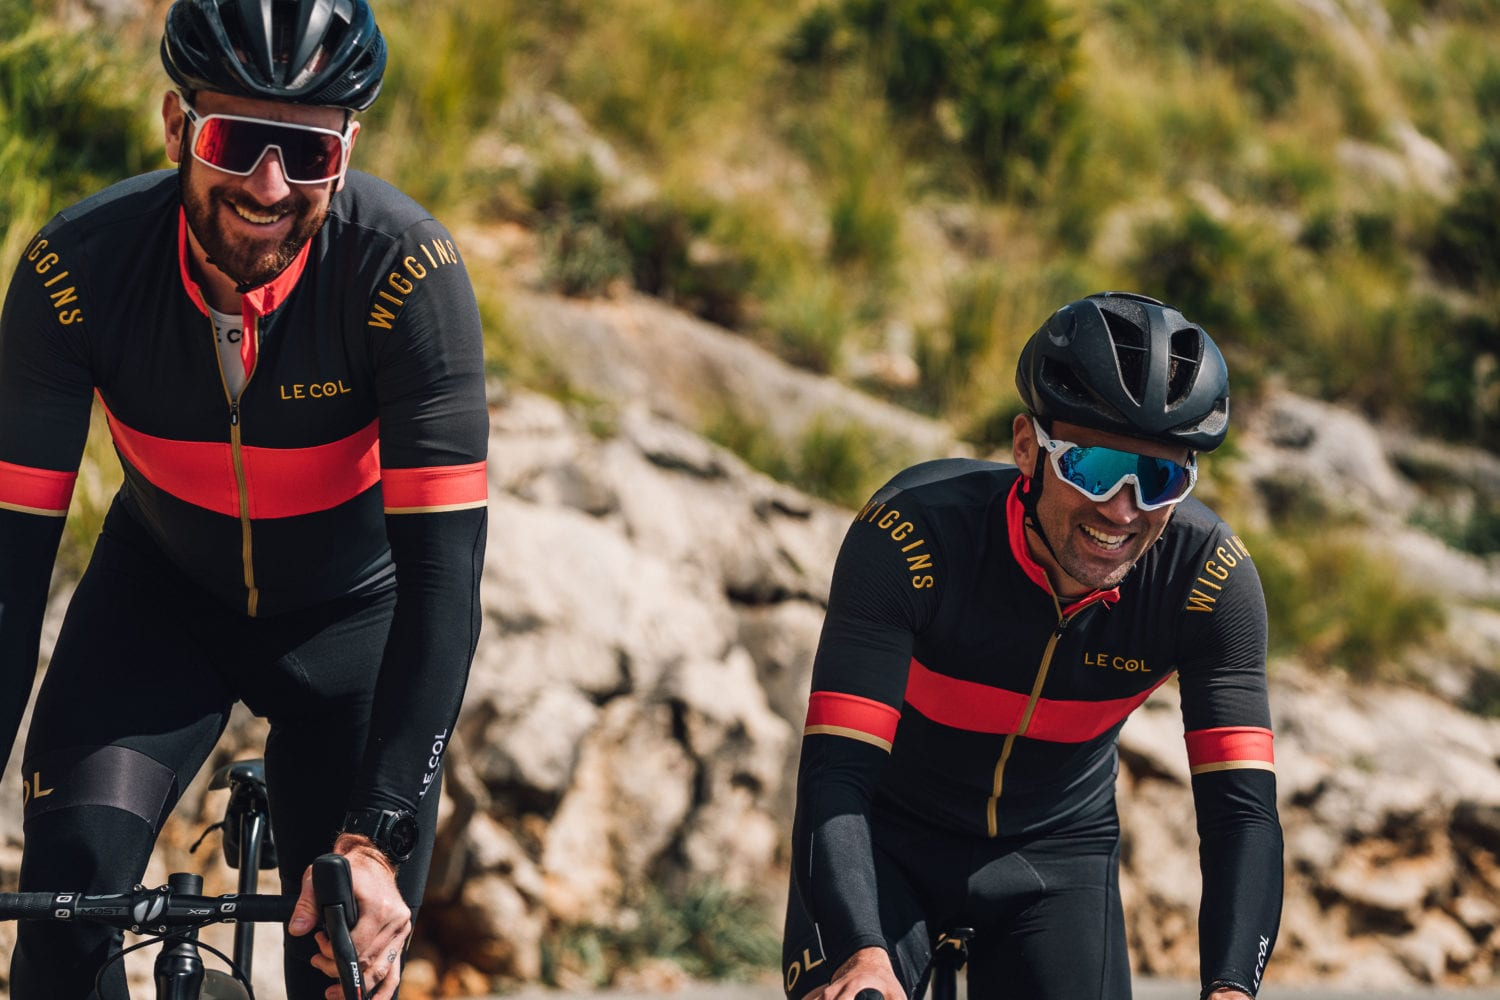 Updated Le Col by Wiggins range now available